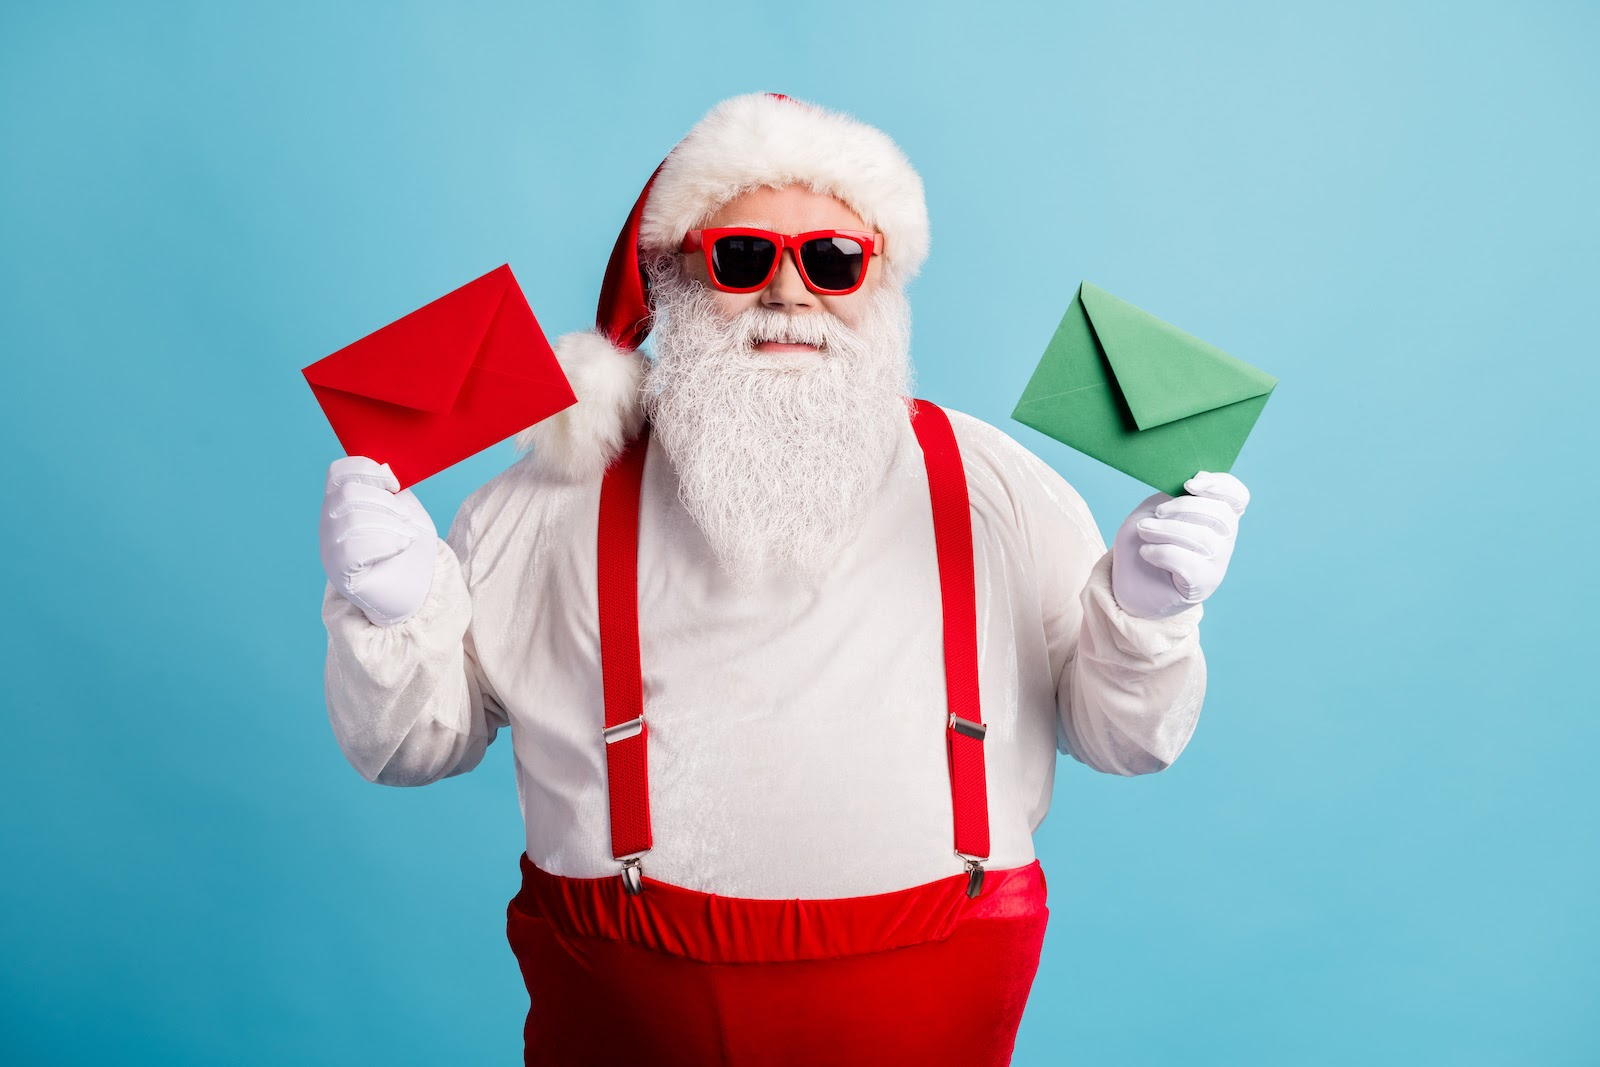 Santa Claus holds up two Christmas cards